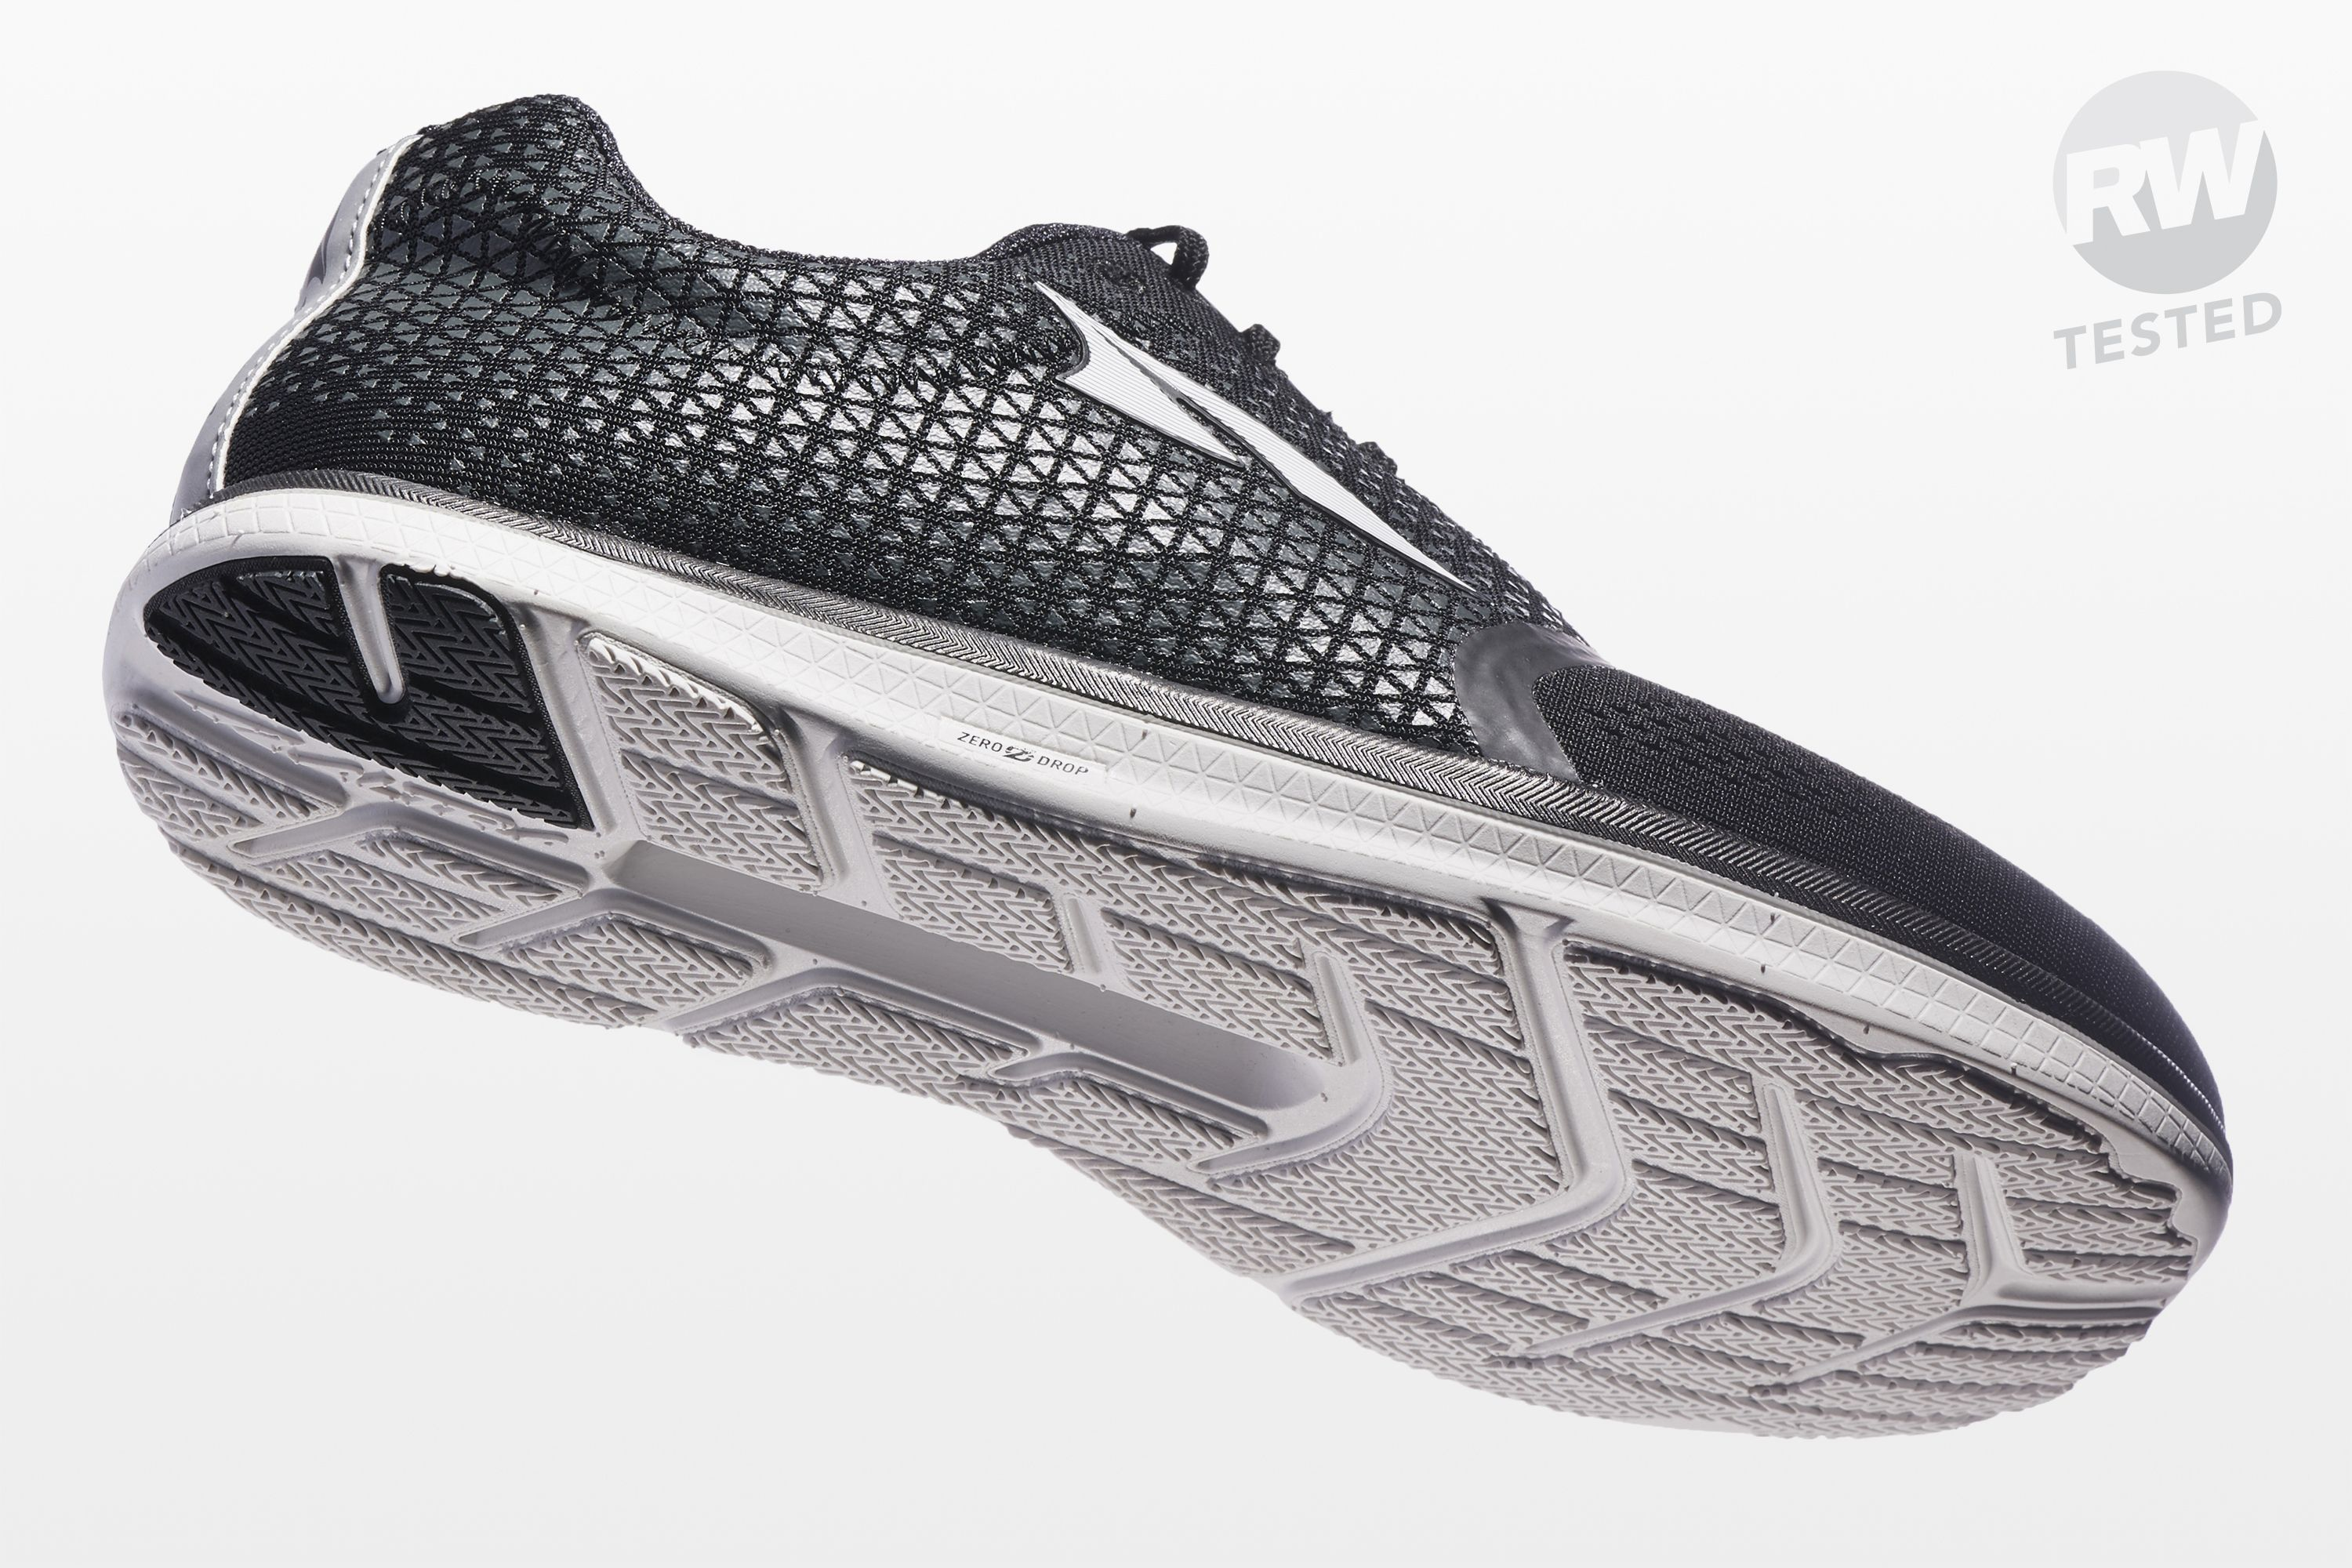 The Altra Solstice Is the Chameleon of Lightweight Running Shoes